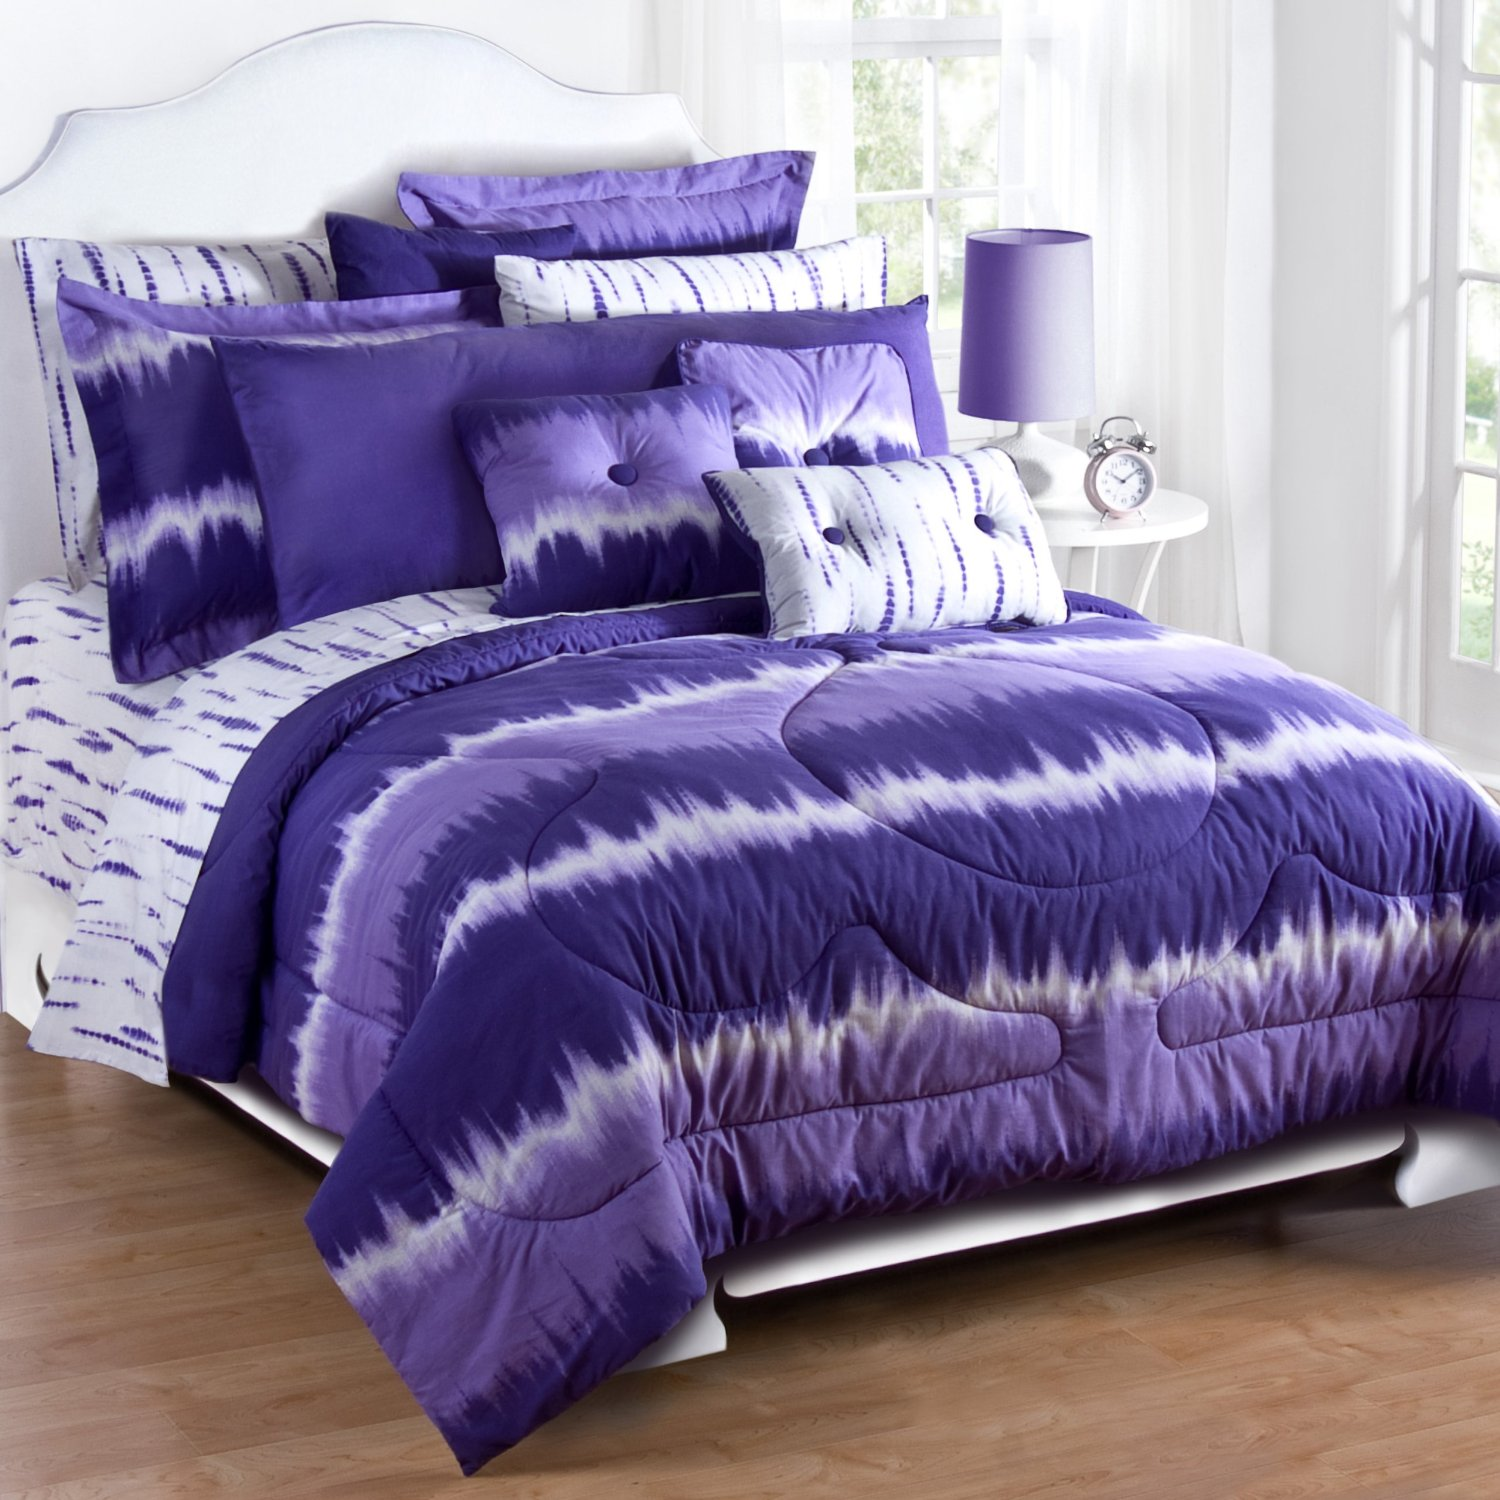 Bedroom Comforter Sets Purple Purple Comforter Sets